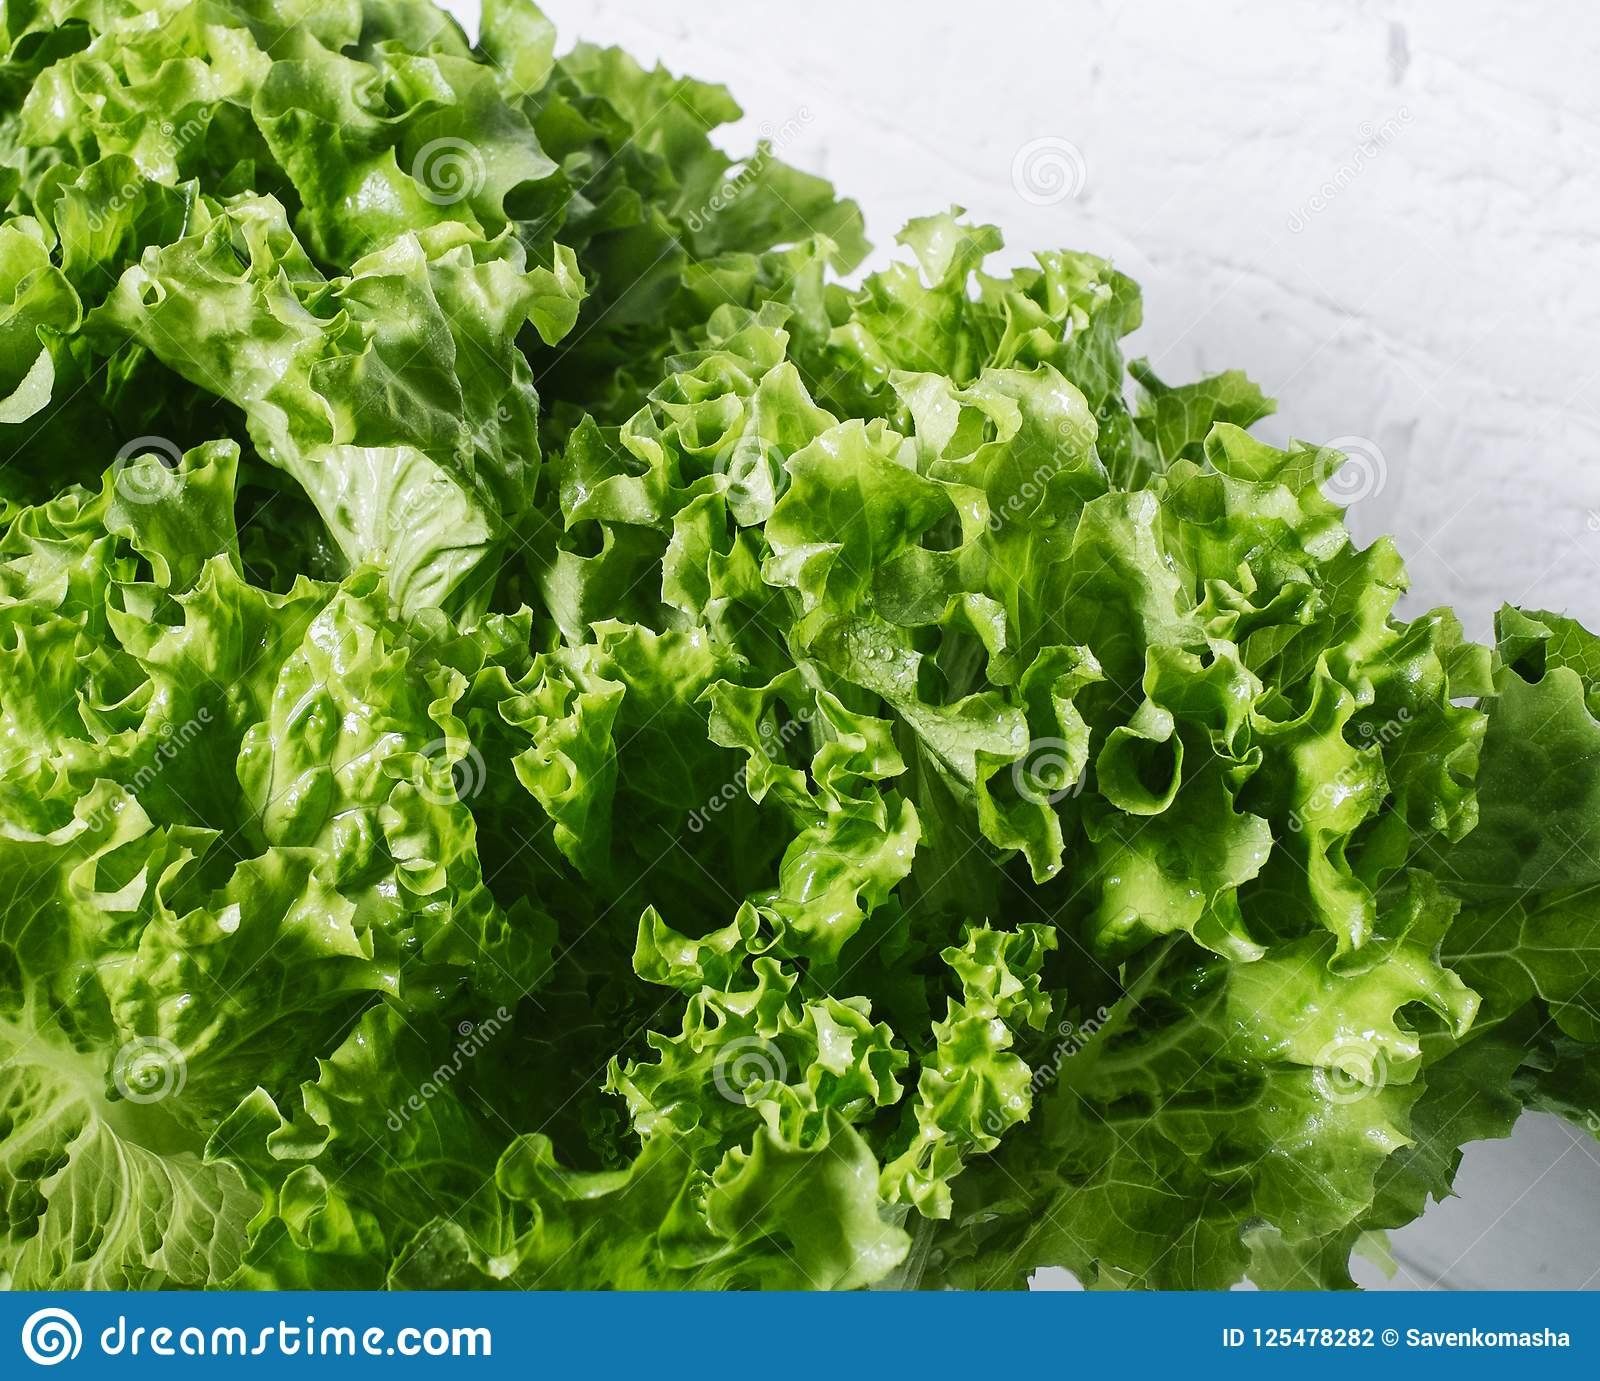 Fresh salad lettuce leaves on a background of white brick wall vertical isolated